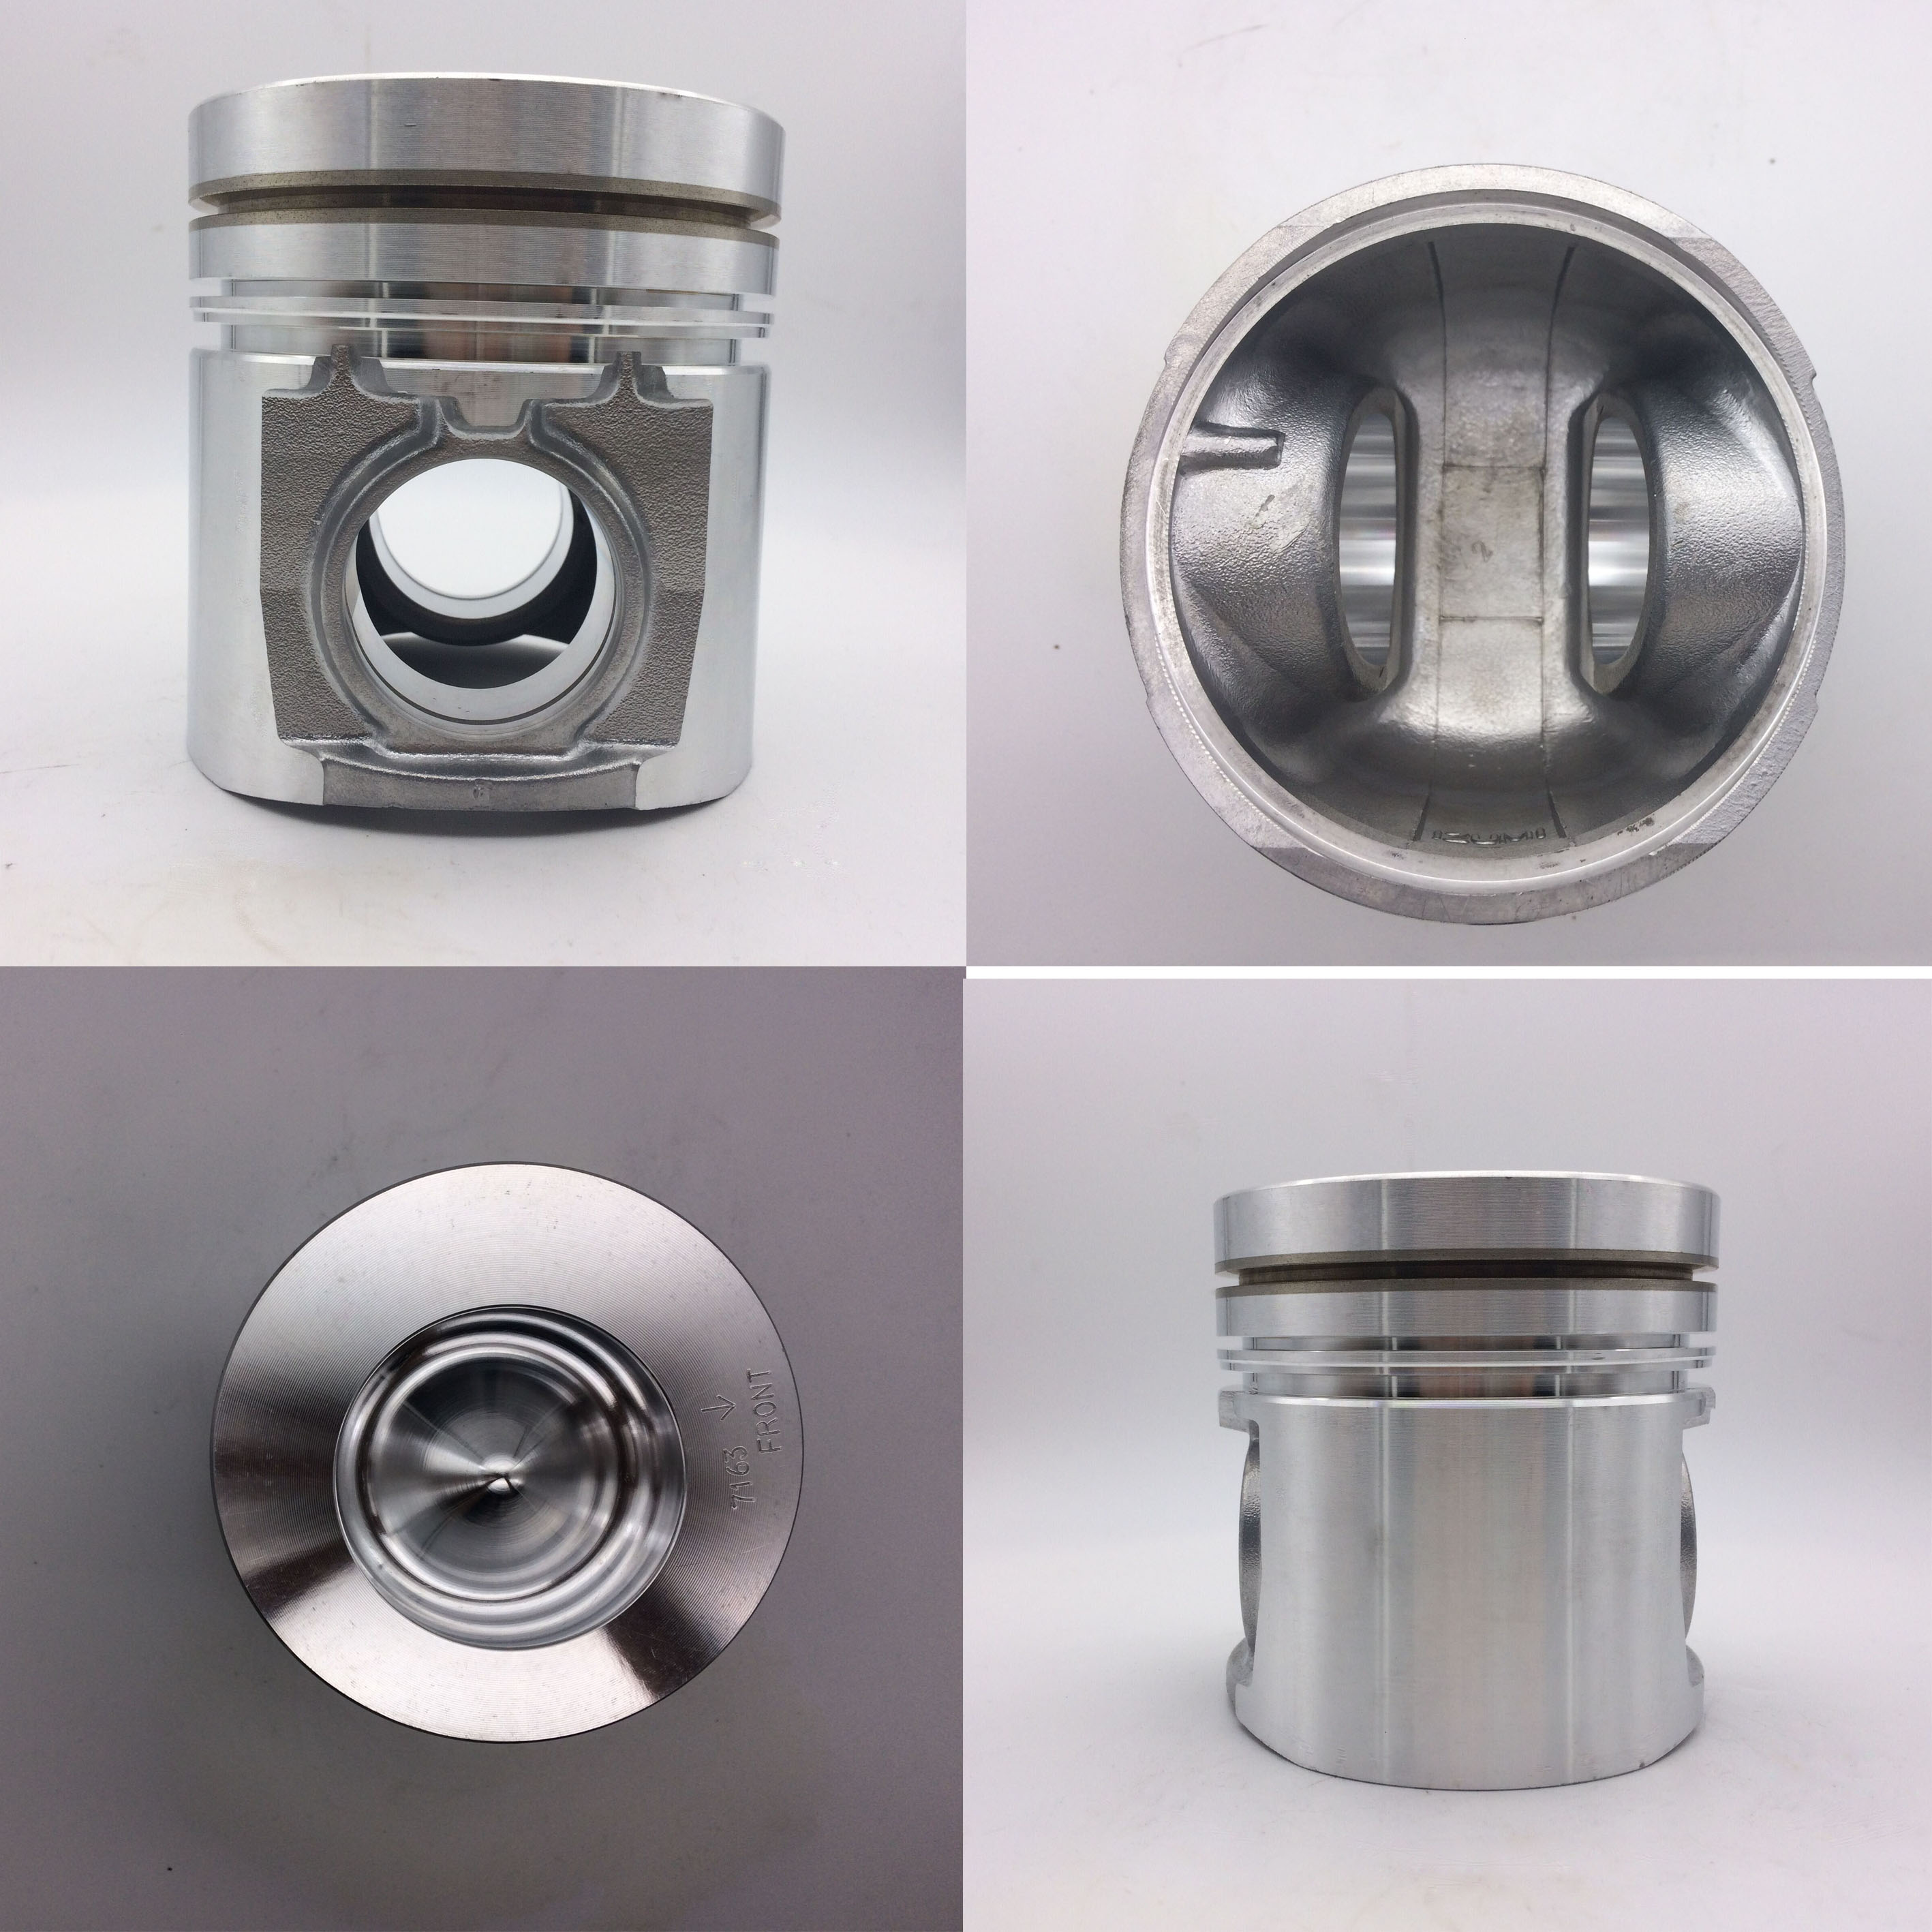 Cummins 4BT/6BT piston with pin and clip